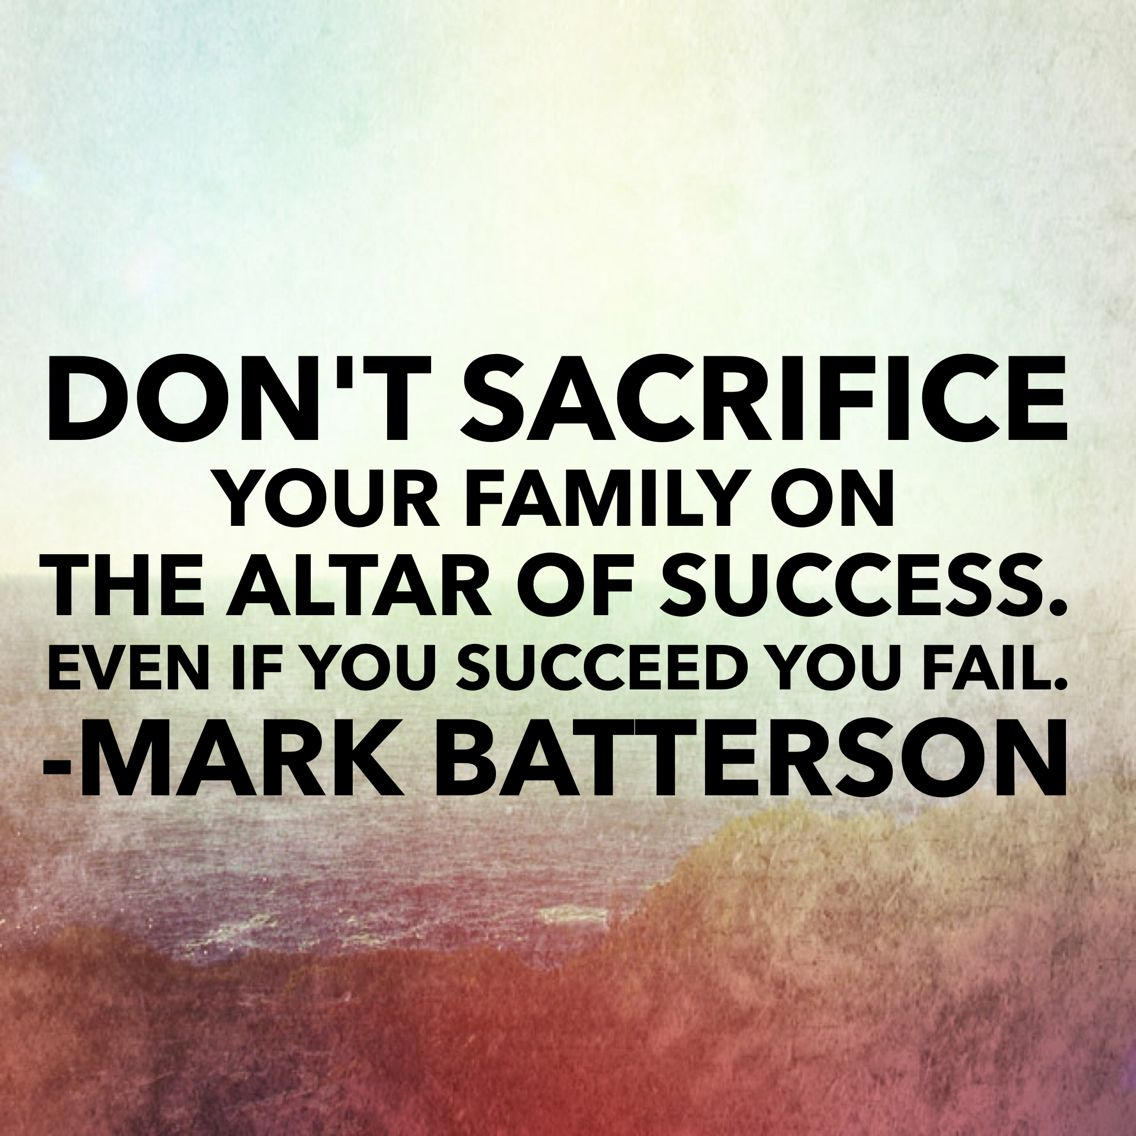 Don T Sacrifice Your Family On The Altar Of Success Even If You Succeed You Fail Mark Batterson Family Quotes Sacrifice Quotes Labor Day Quotes